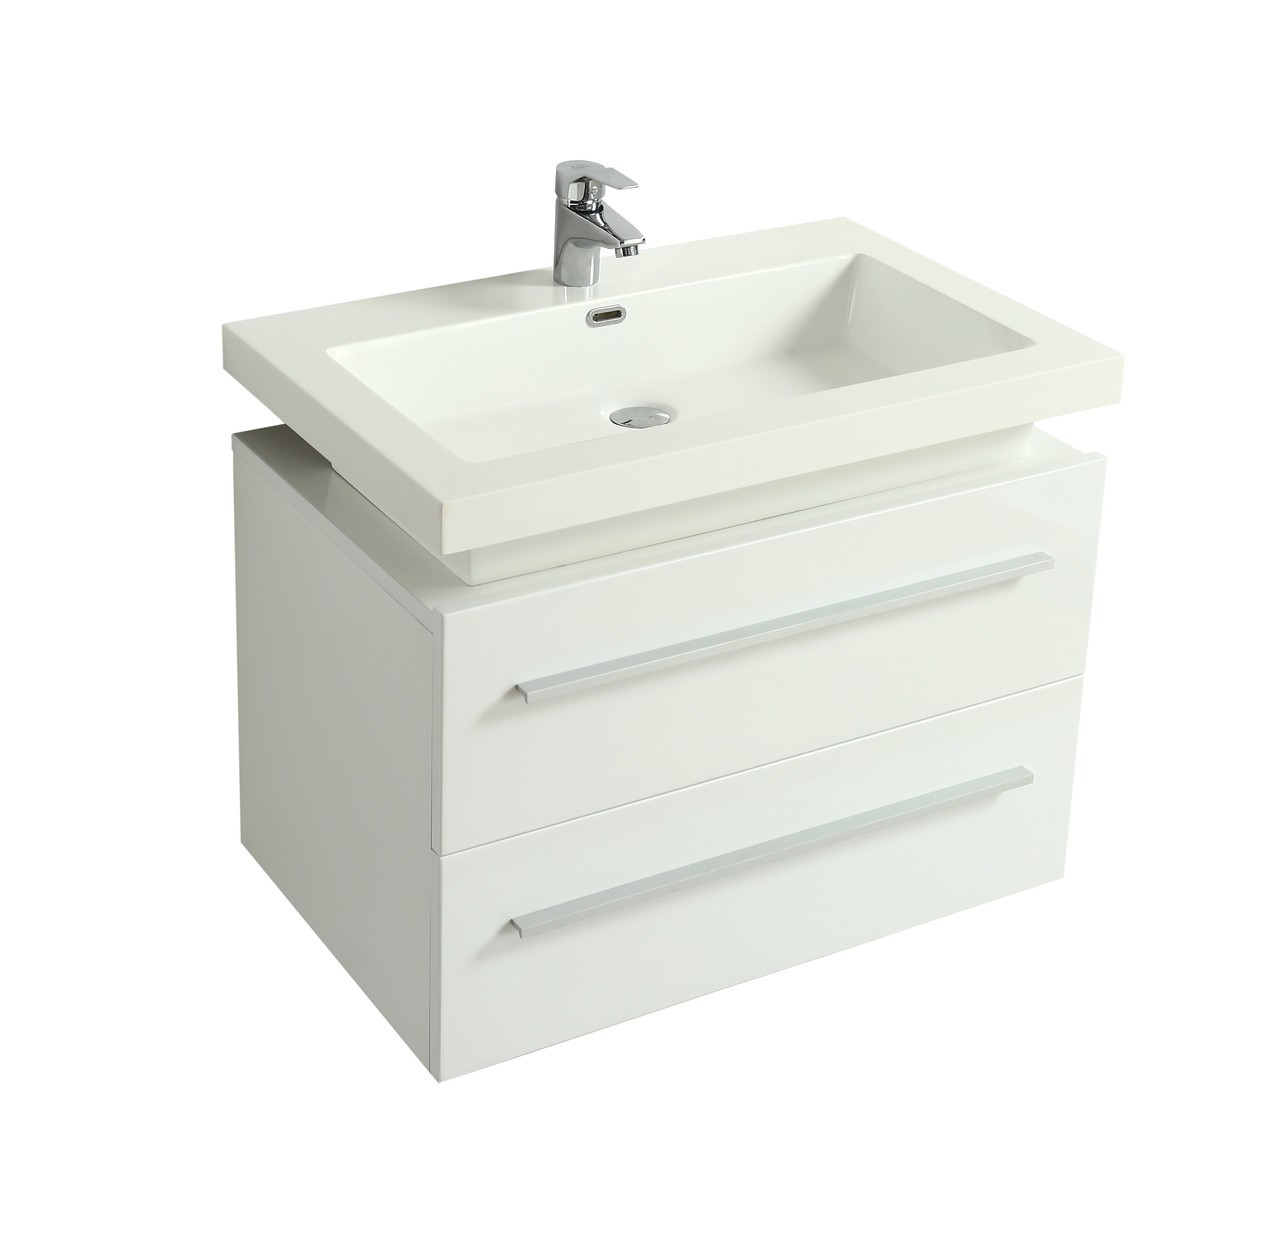 Rubi Arto 36 Wall Mount Bathroom Vanity York Taps